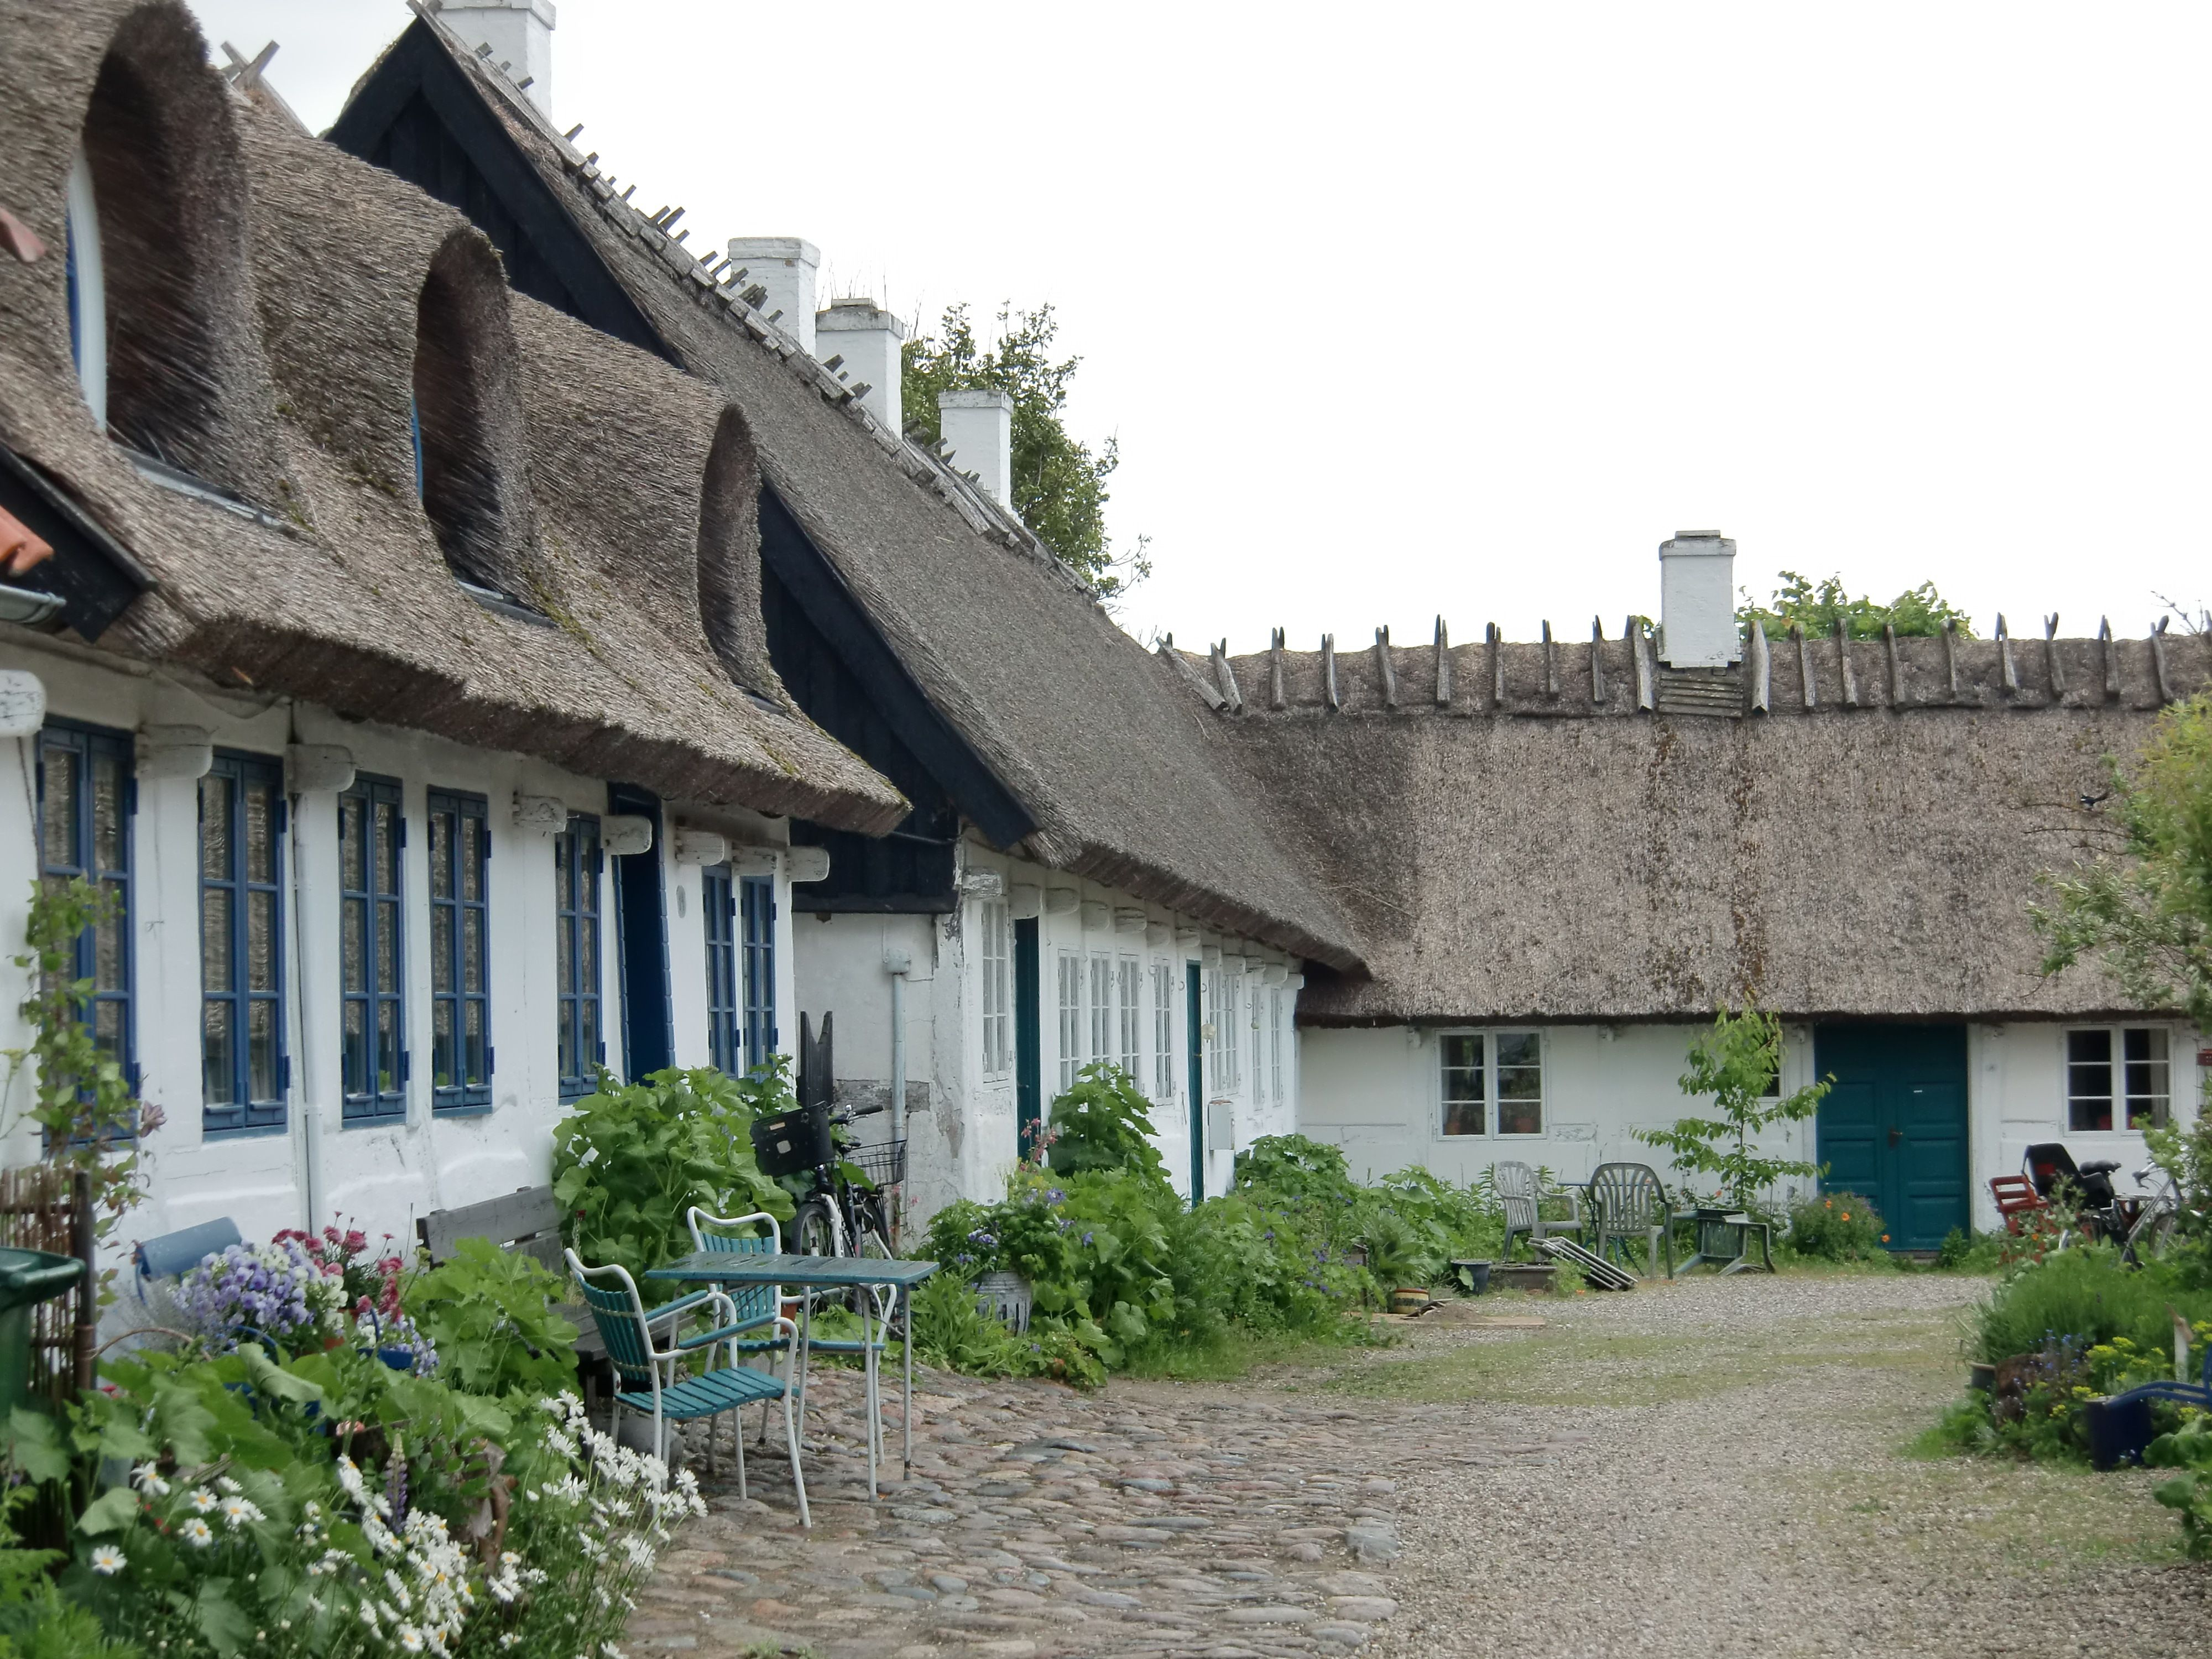 Roskilde_houses with thatched roofs on the island of